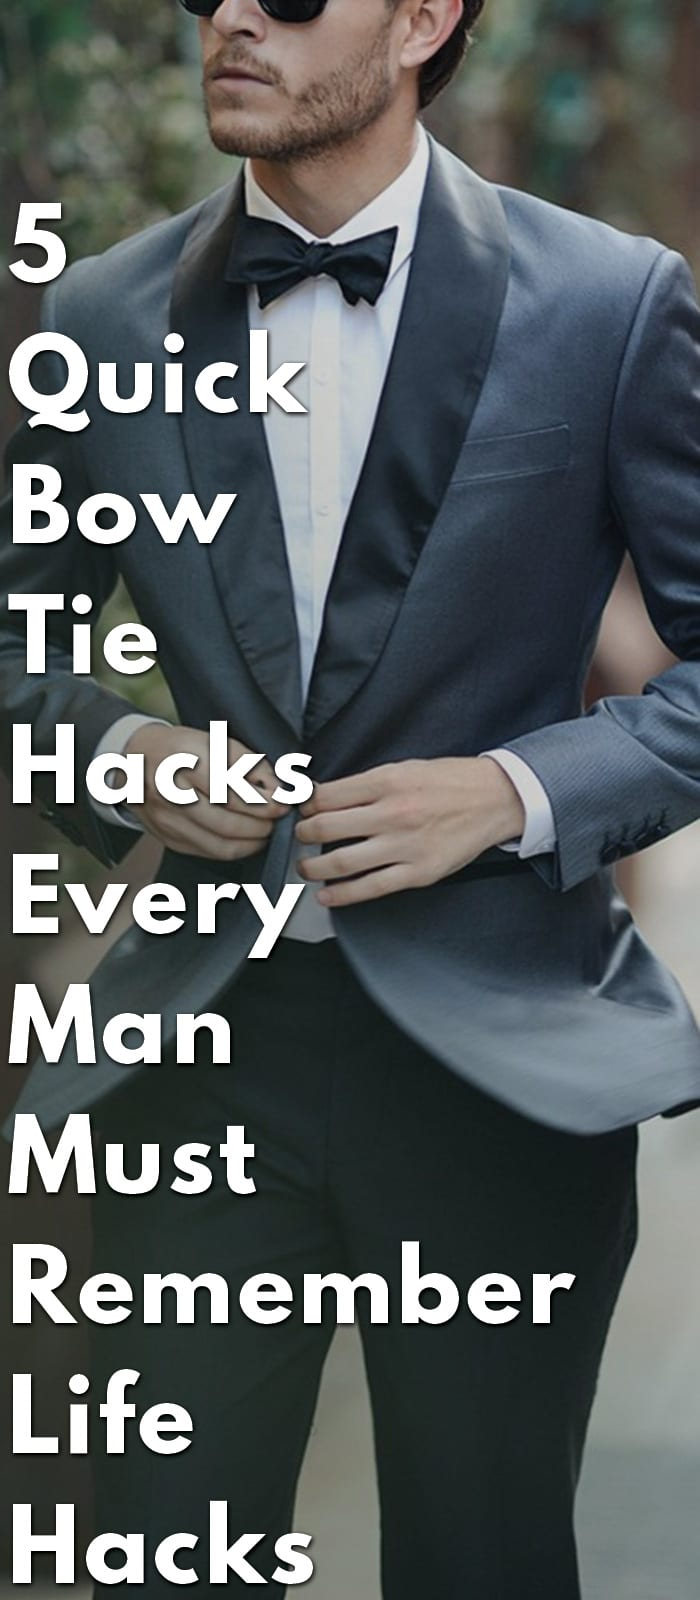 5-Quick-Bow-Tie-Hacks-Every-Man-Must-Remember--Life-Hacks